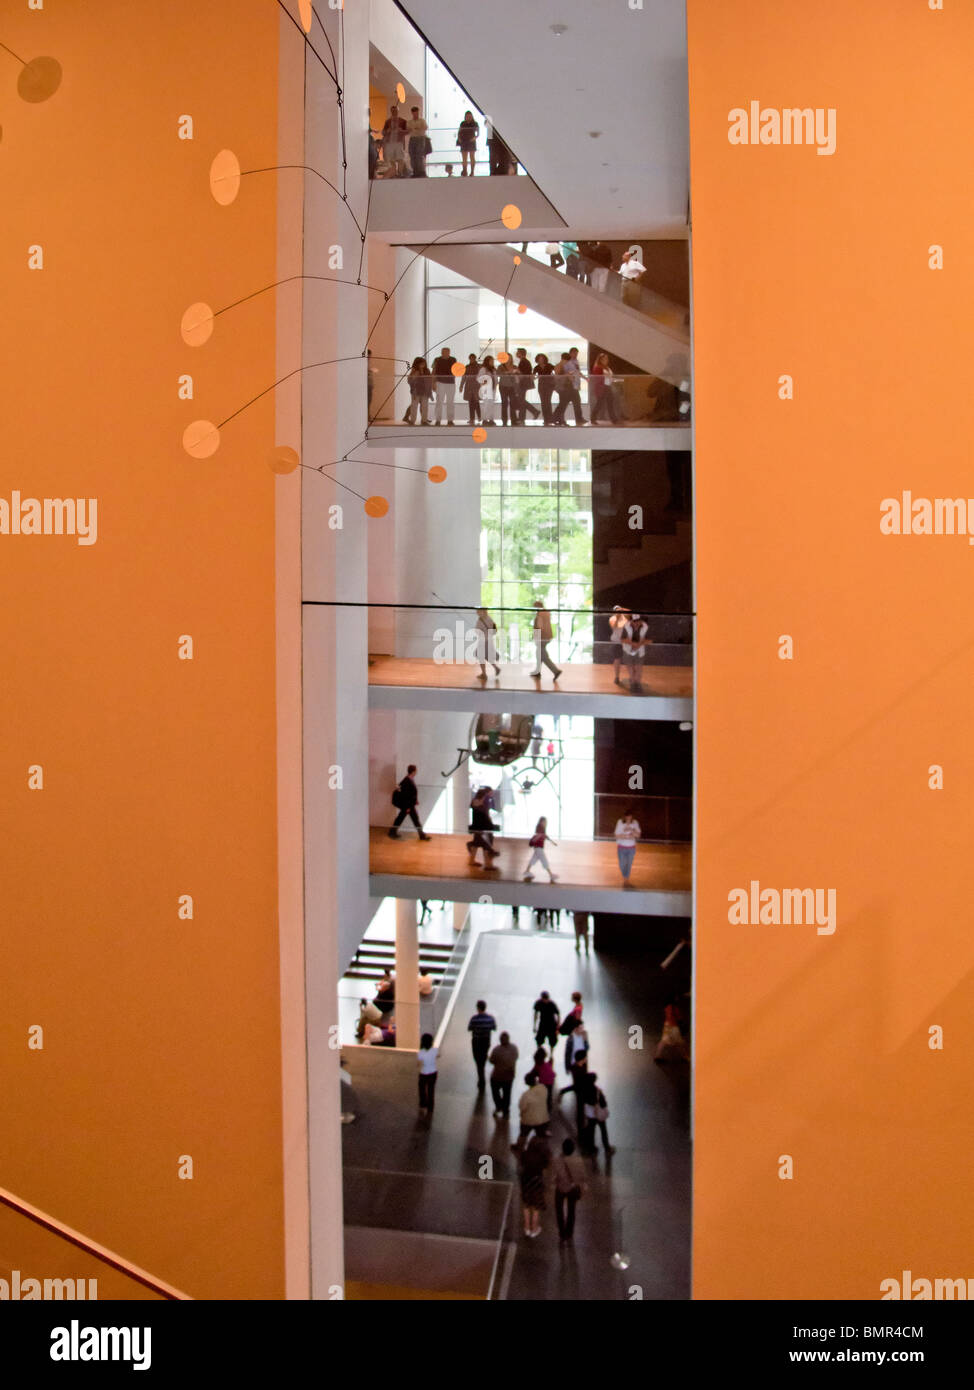 Visitors at the Museum of Modern Art in New York City walk on visible floors. Note Alexander Calder mobile (foreground). - Stock Image